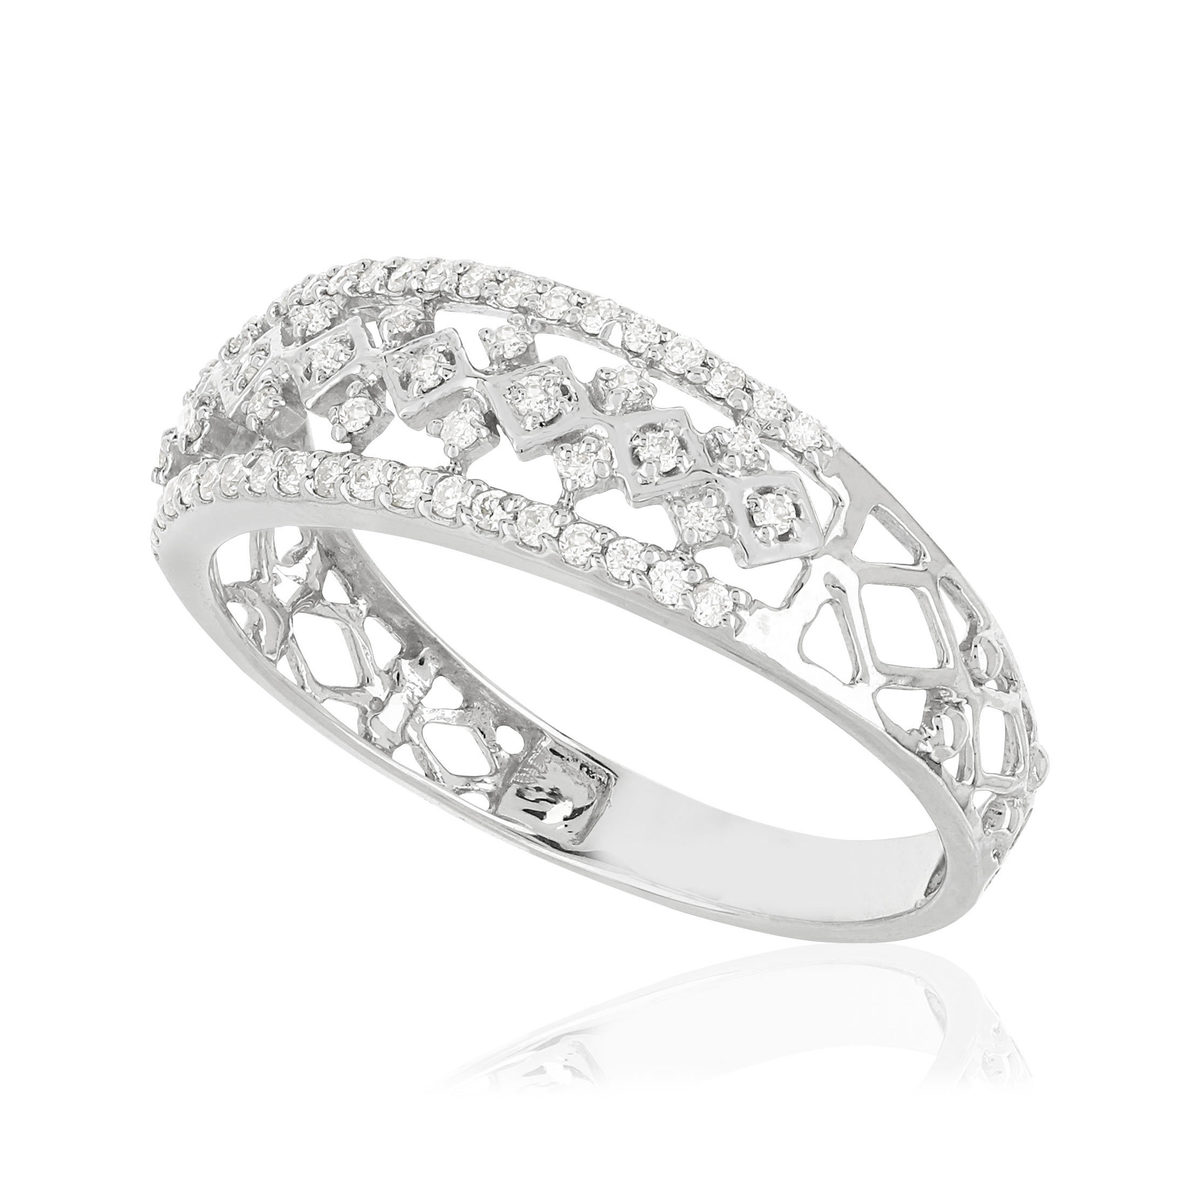 Bague MATY Or 375 blanc Diamants - vue VD1